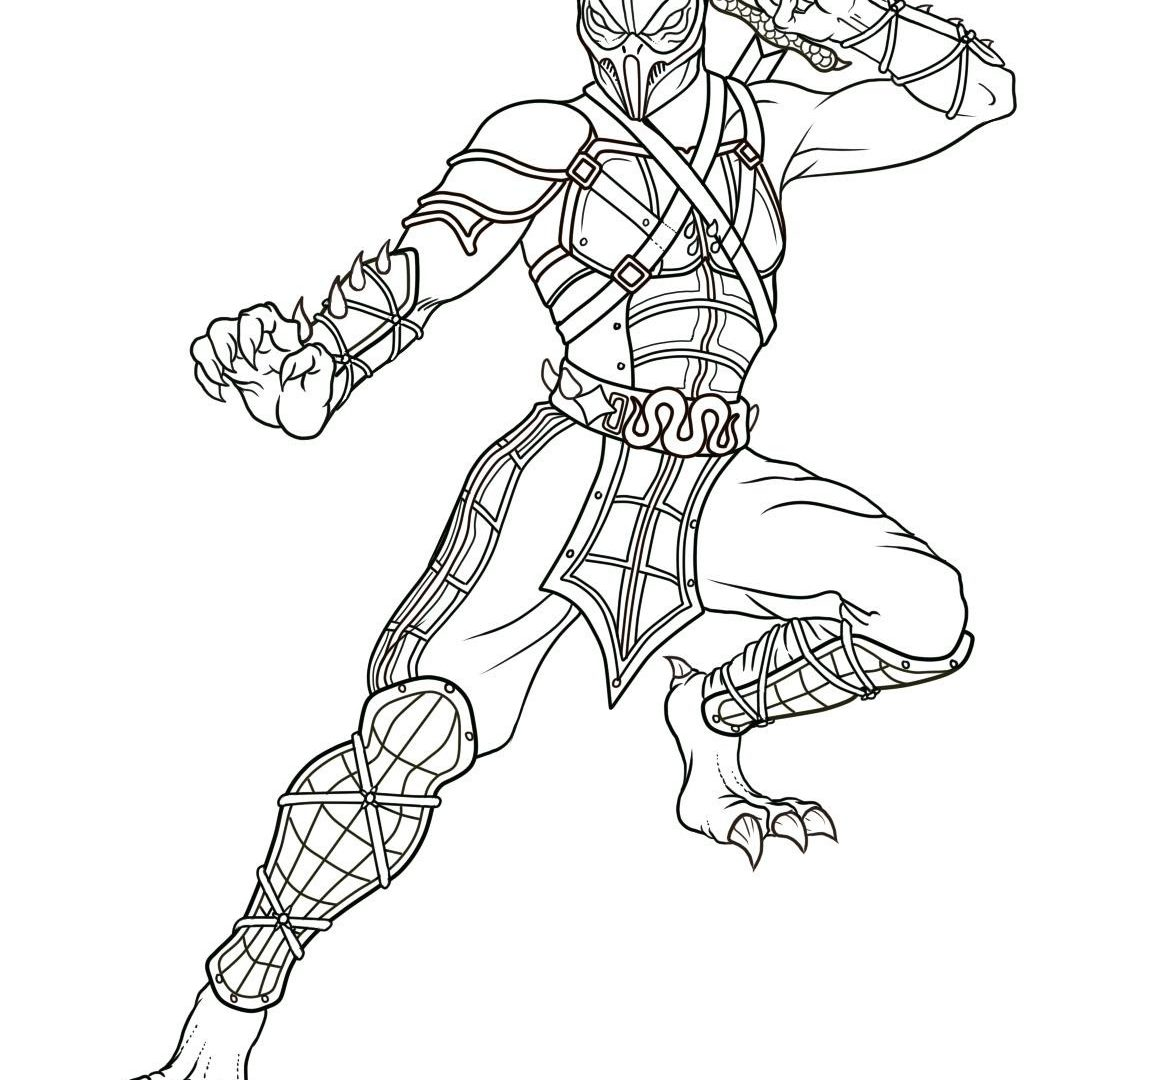 1150x1080 Good Mortal Kombat Coloringages Kitanarintable To Humorousage